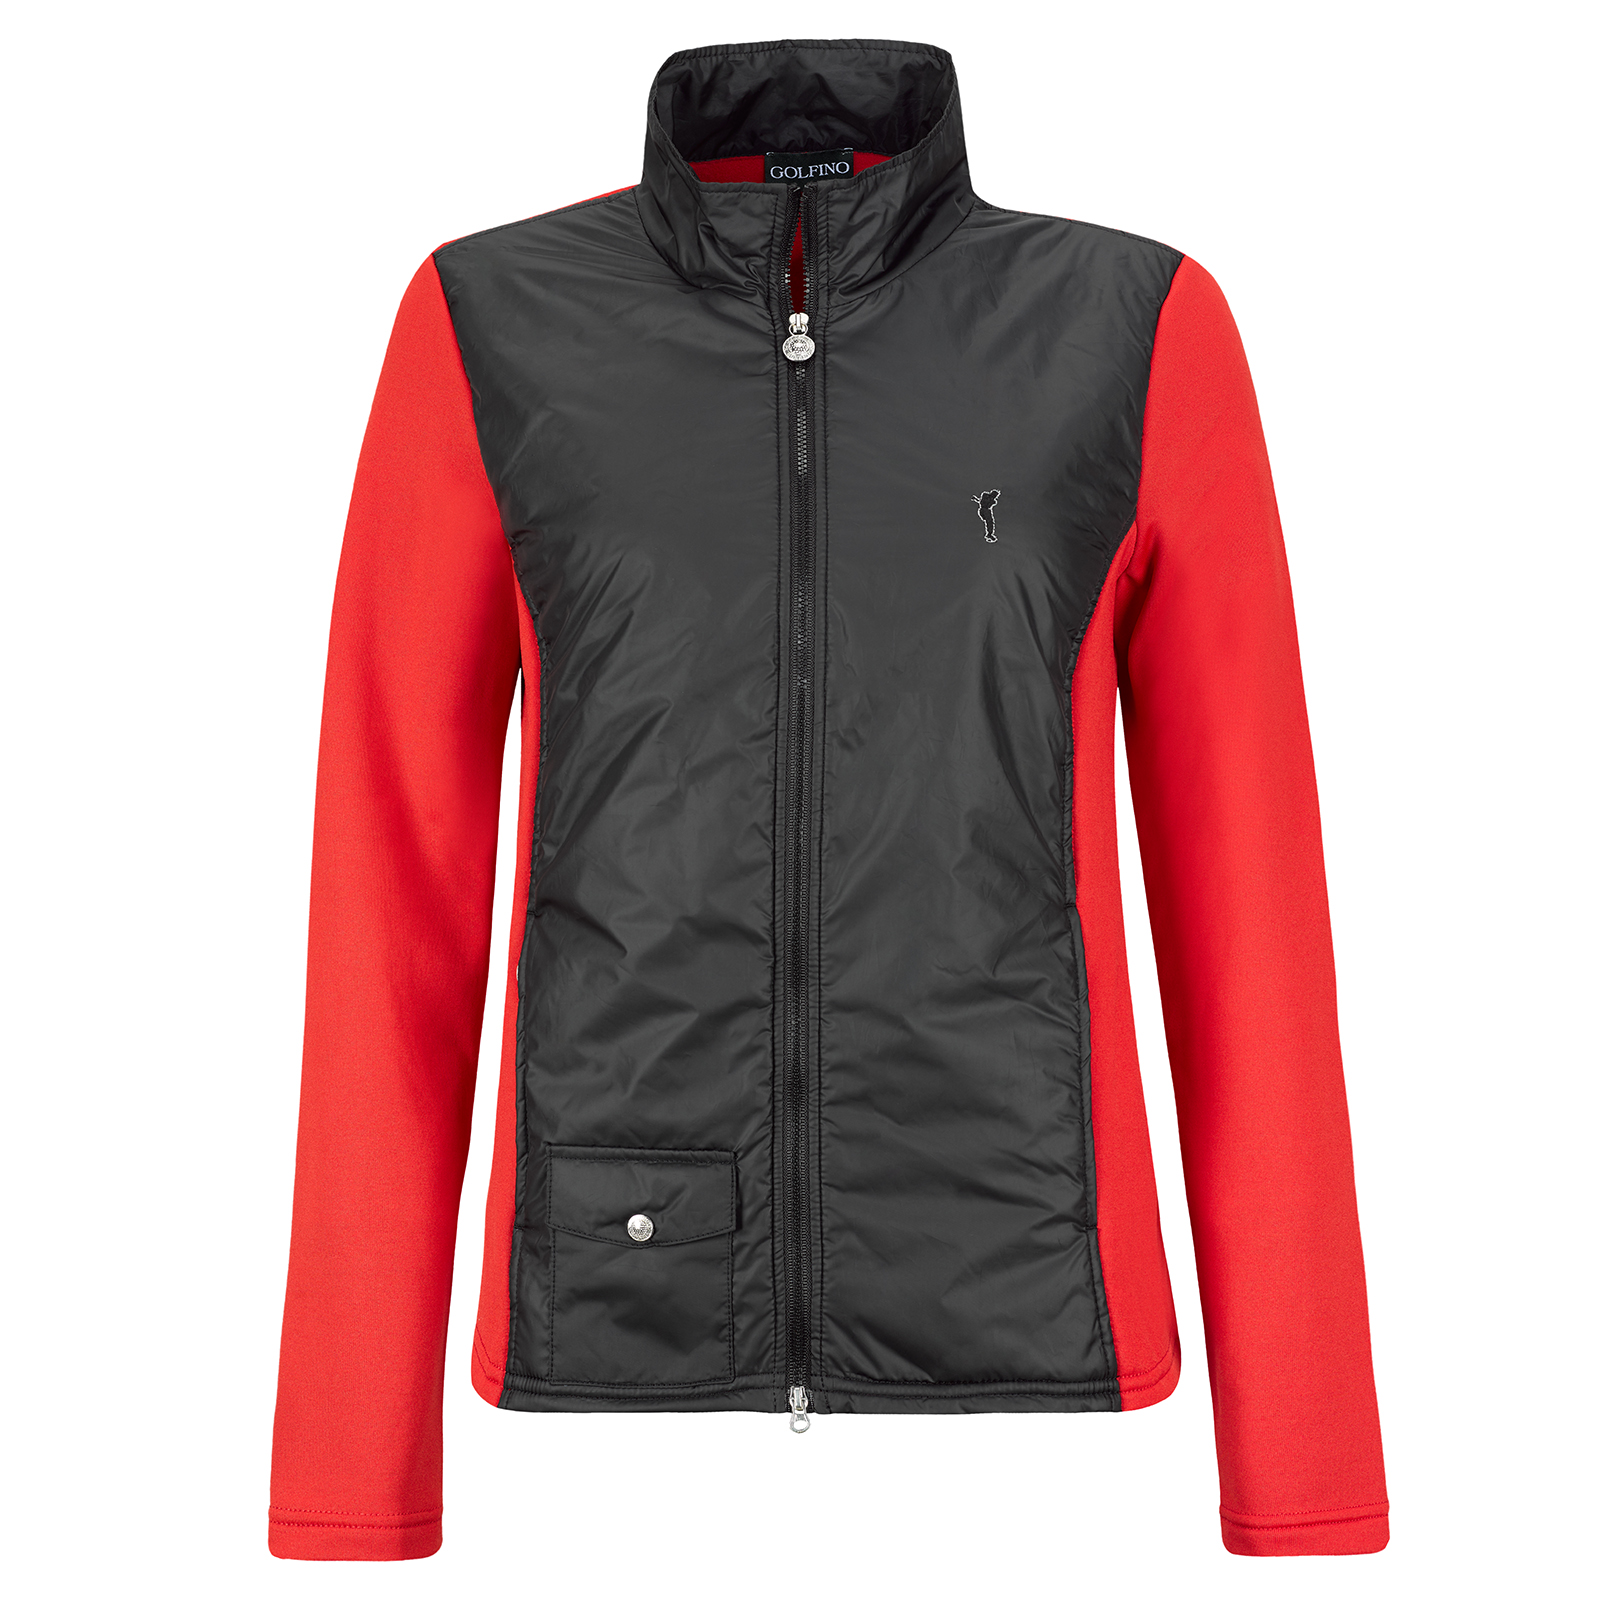 Ladies' micro stretch Polar Light functional jacket with fleece lining